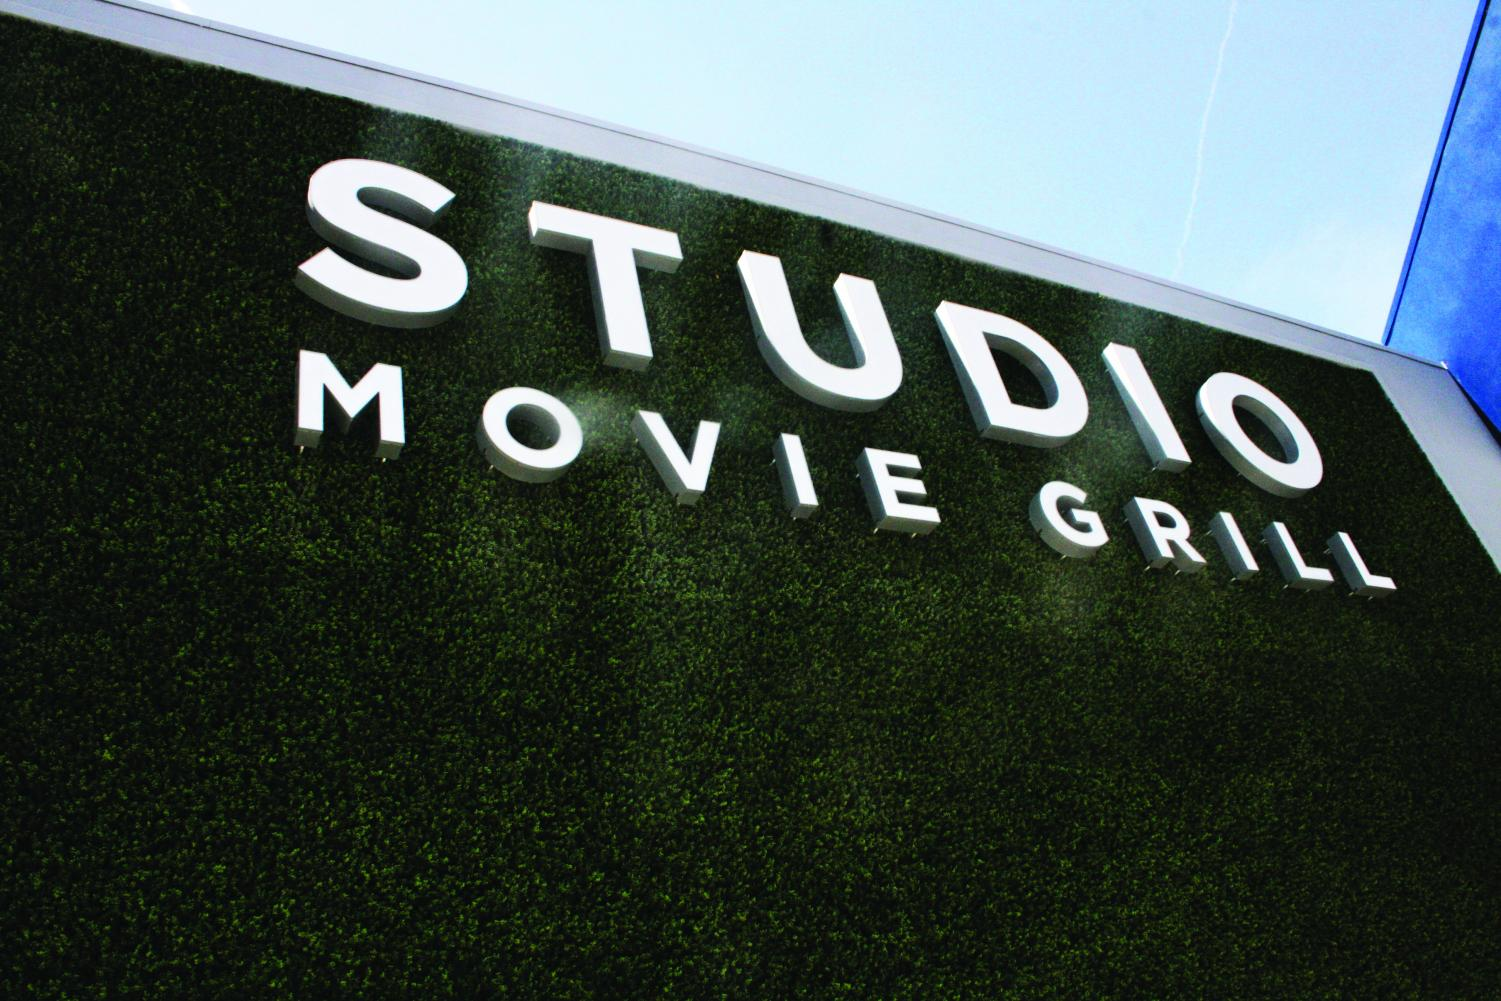 Studio Movie Grill Marquee displayed outside the new plush-seat full-menu service theater on Calloway and Rosedale.